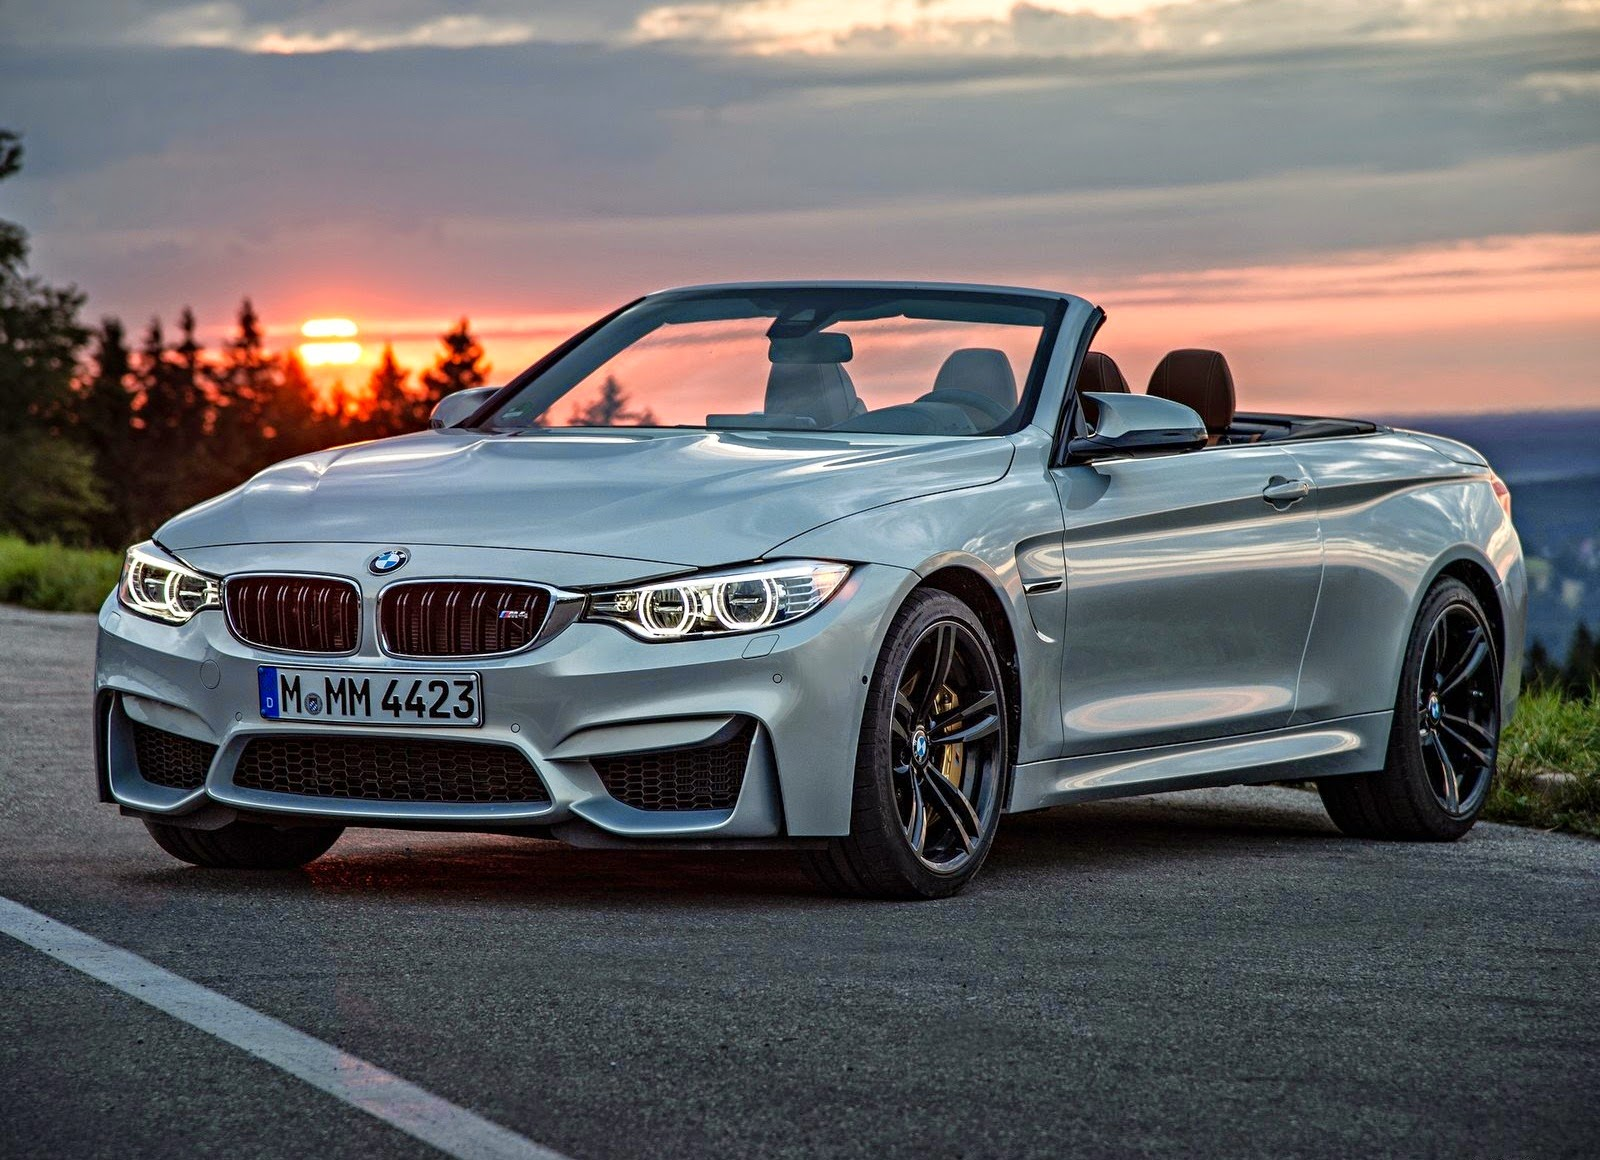 bmw m4 convertible 2015 car hd wallpaper classic car